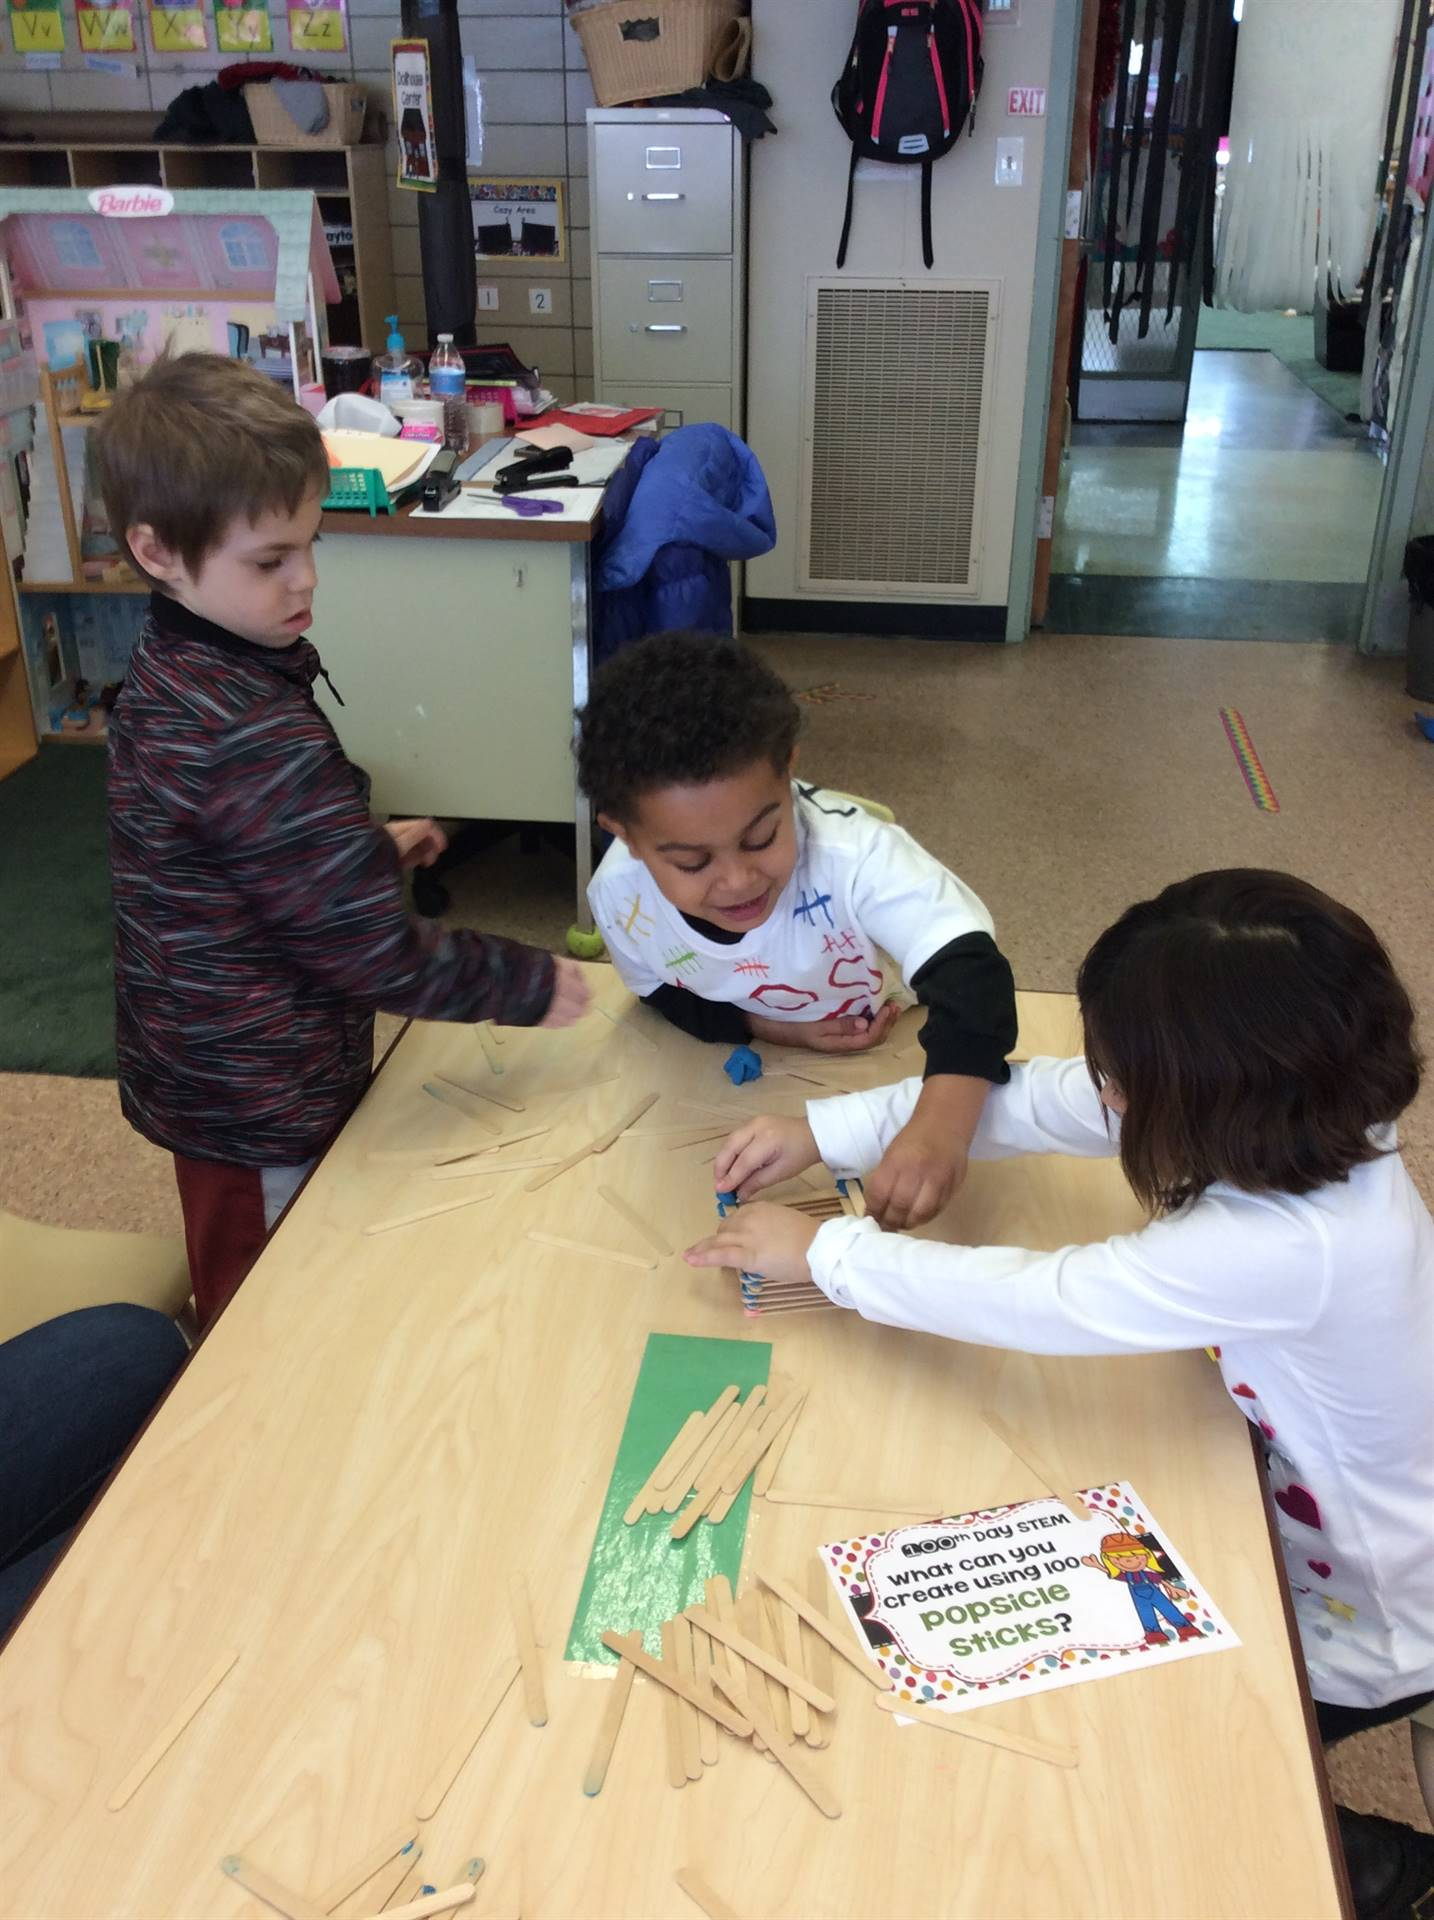 Two pre-k boys and one pre-k girl working together at a table in their classroom to build a tower ou